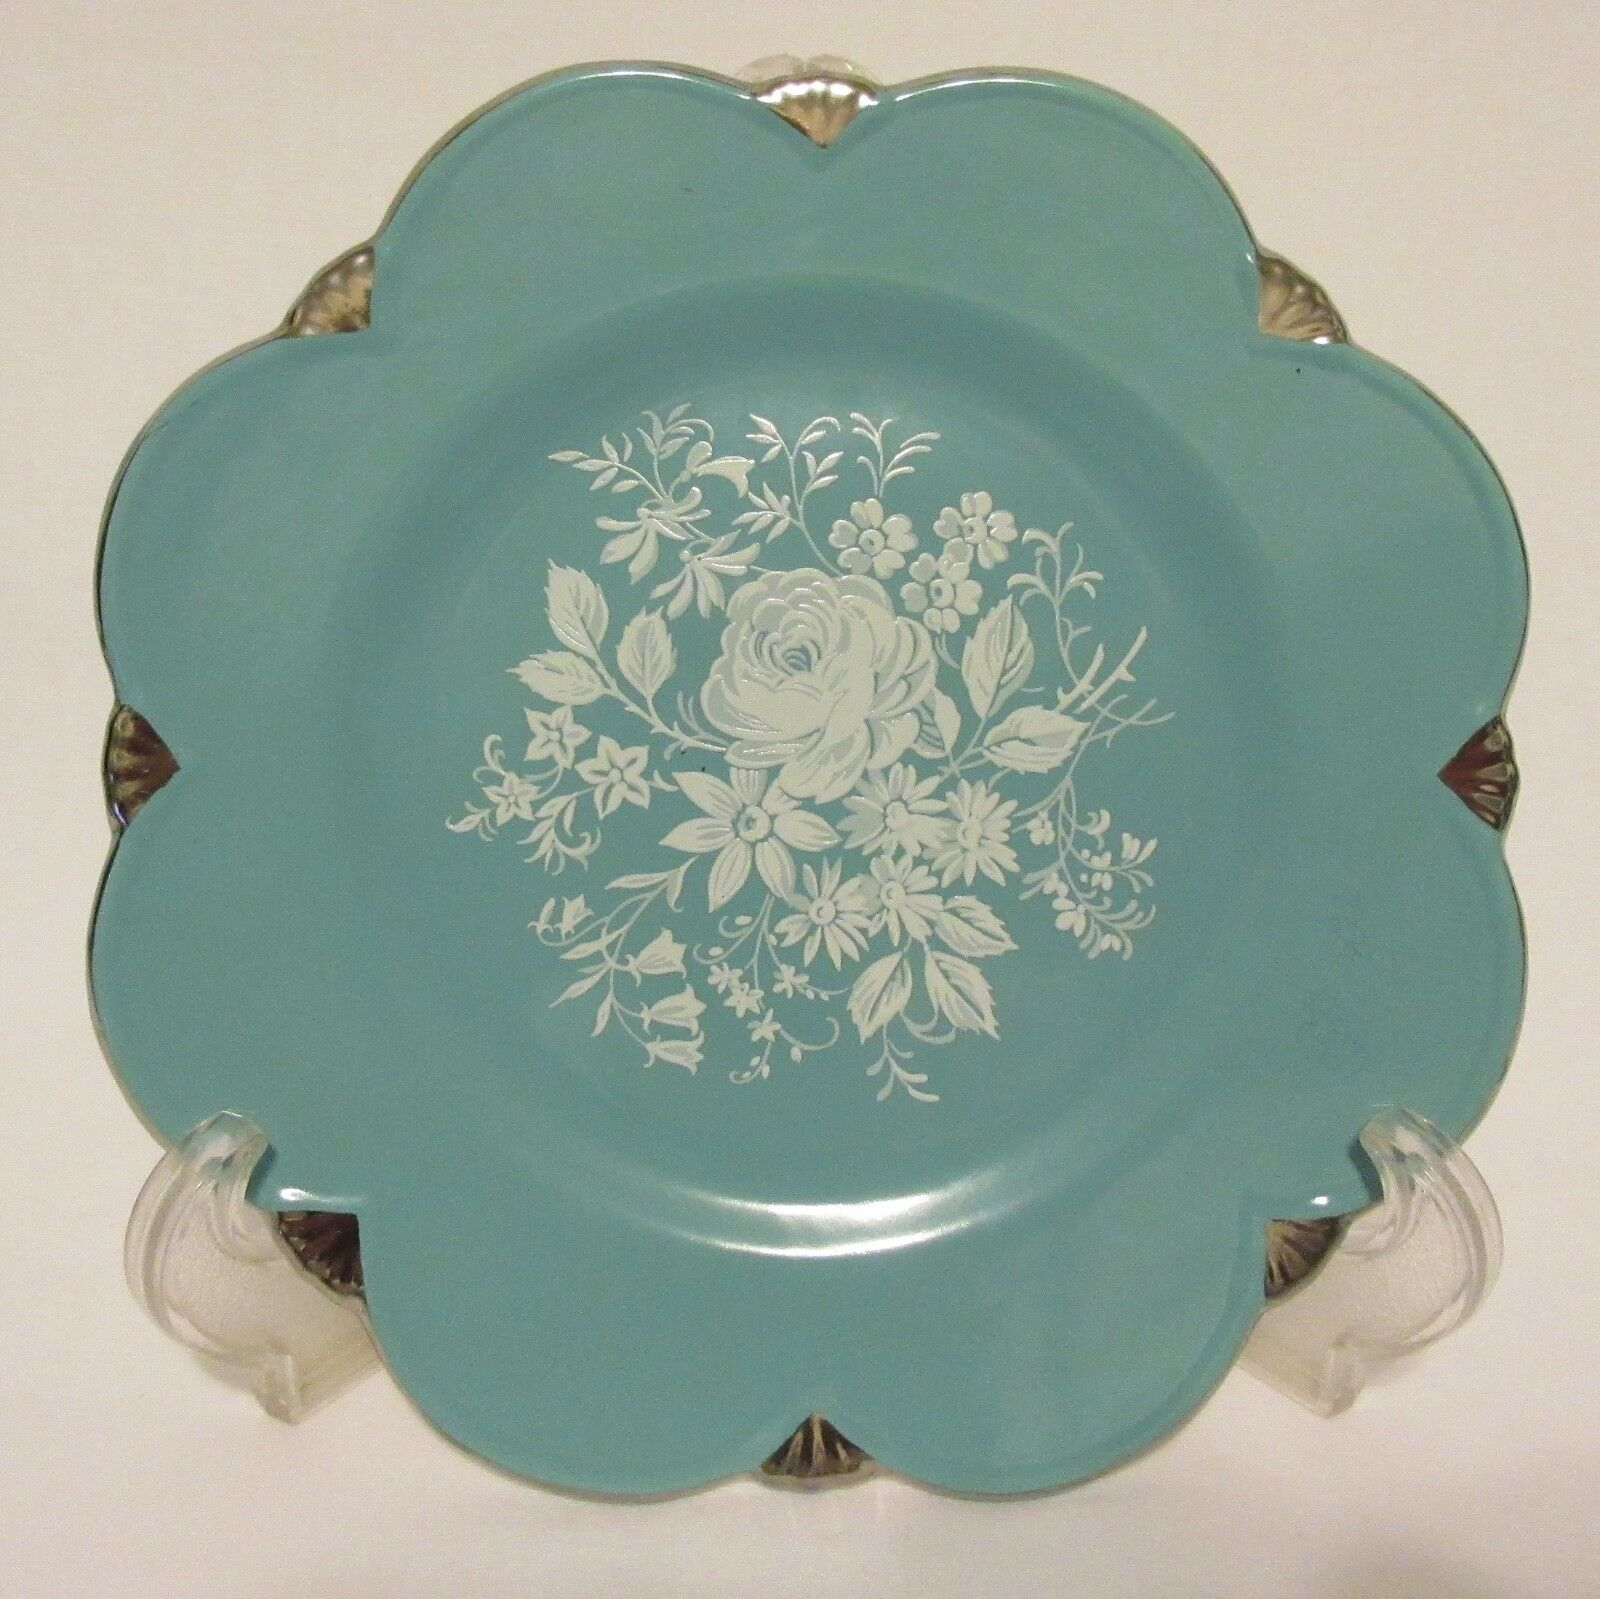 Royal winton grimwades turquoise aqua teal blue flowers silver trim 1 of 5only 1 available izmirmasajfo